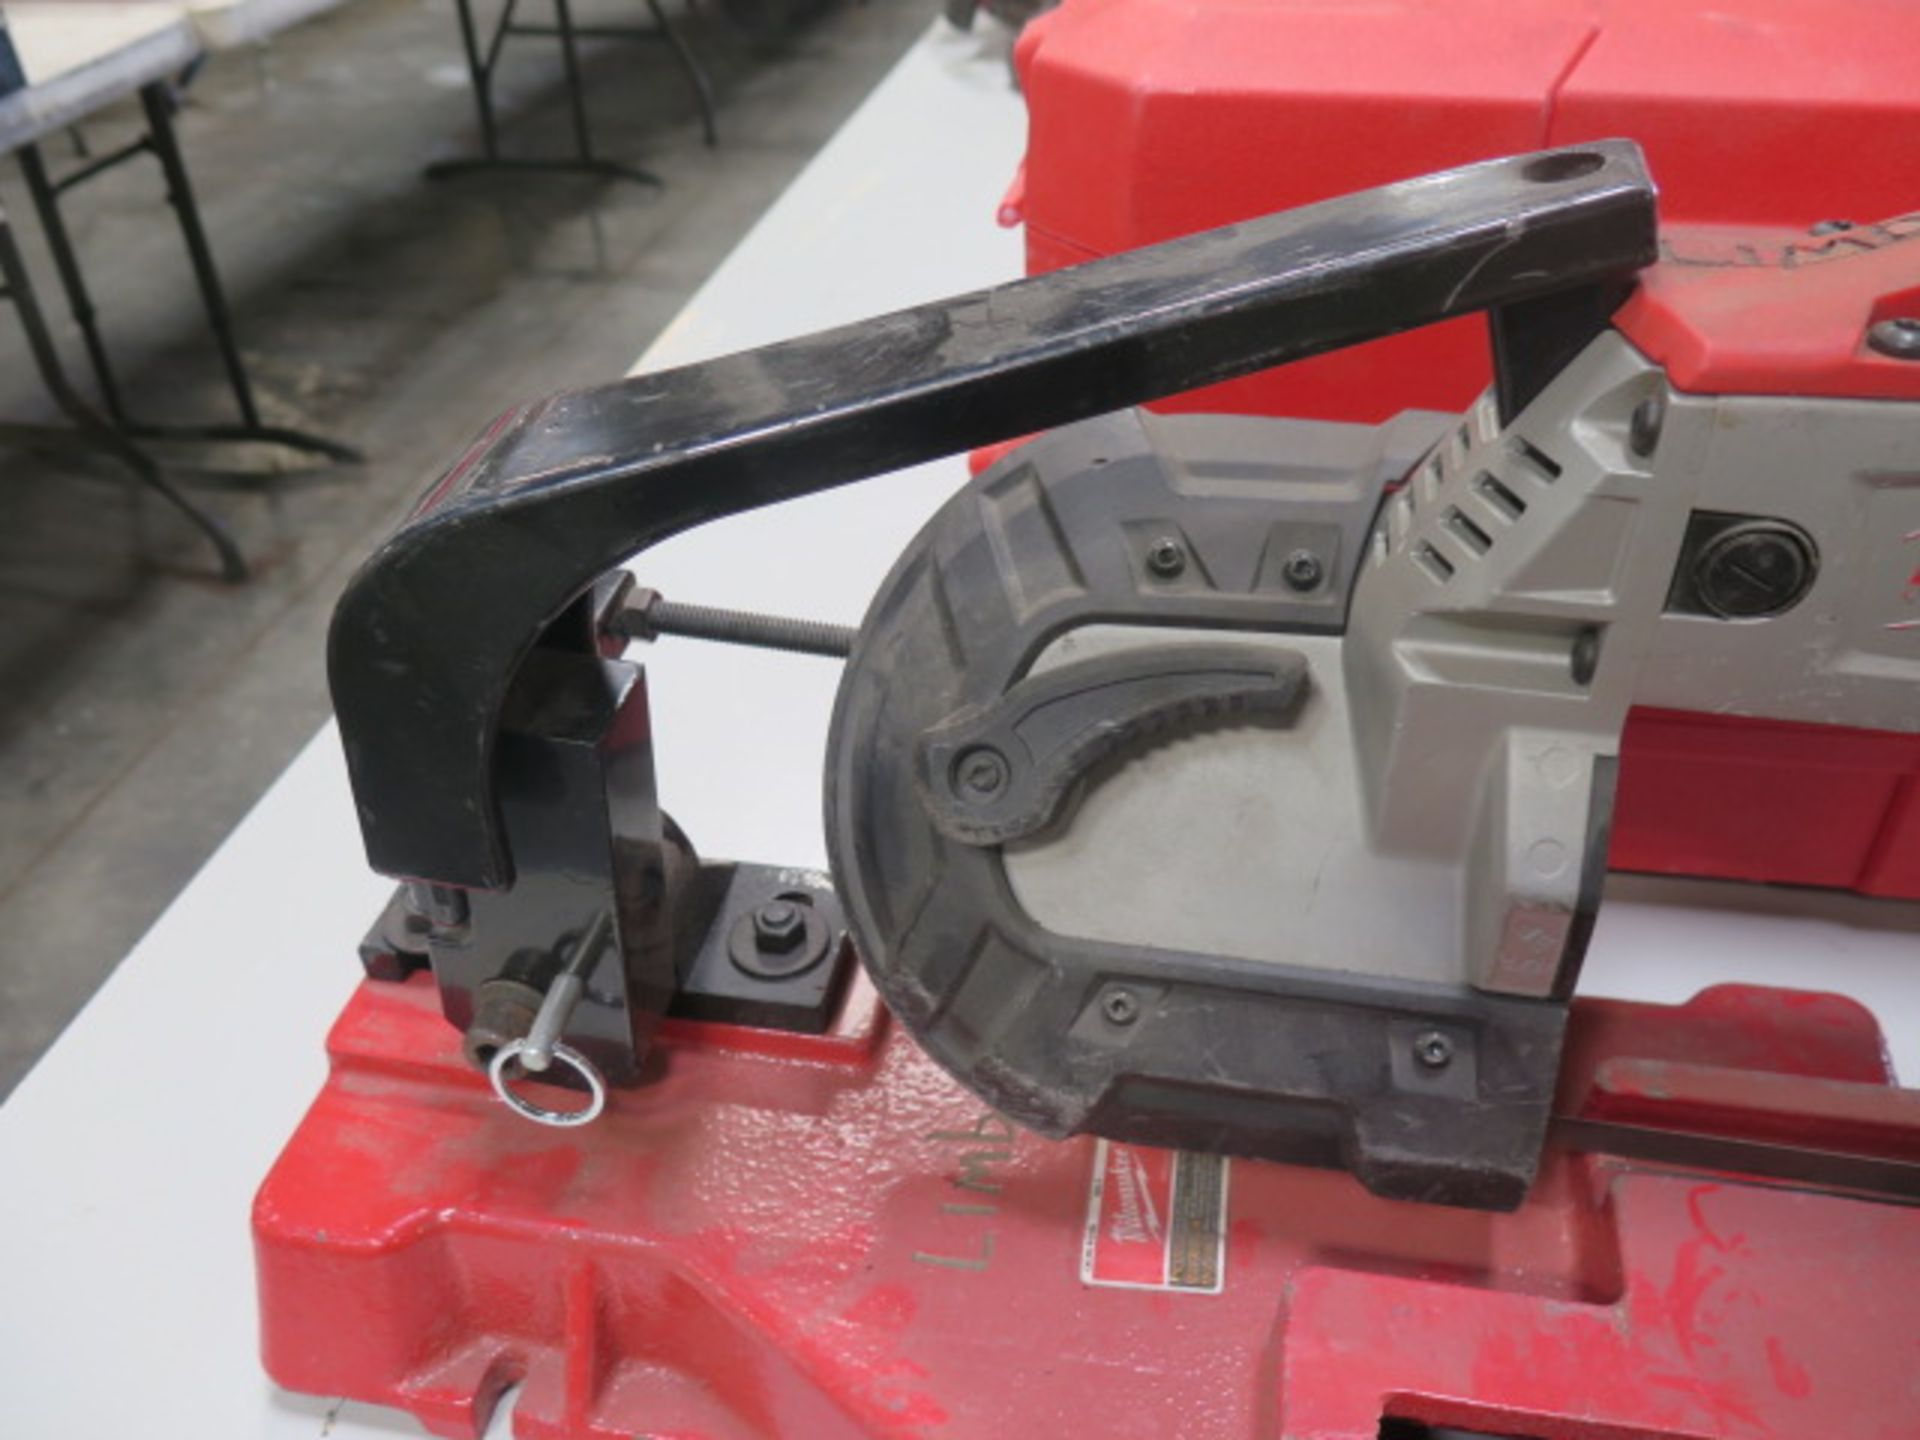 Milwaukee Deep Cut Electric Band Saw w/ Saw Stand (SOLD AS-IS - NO WARRANTY) - Image 5 of 5